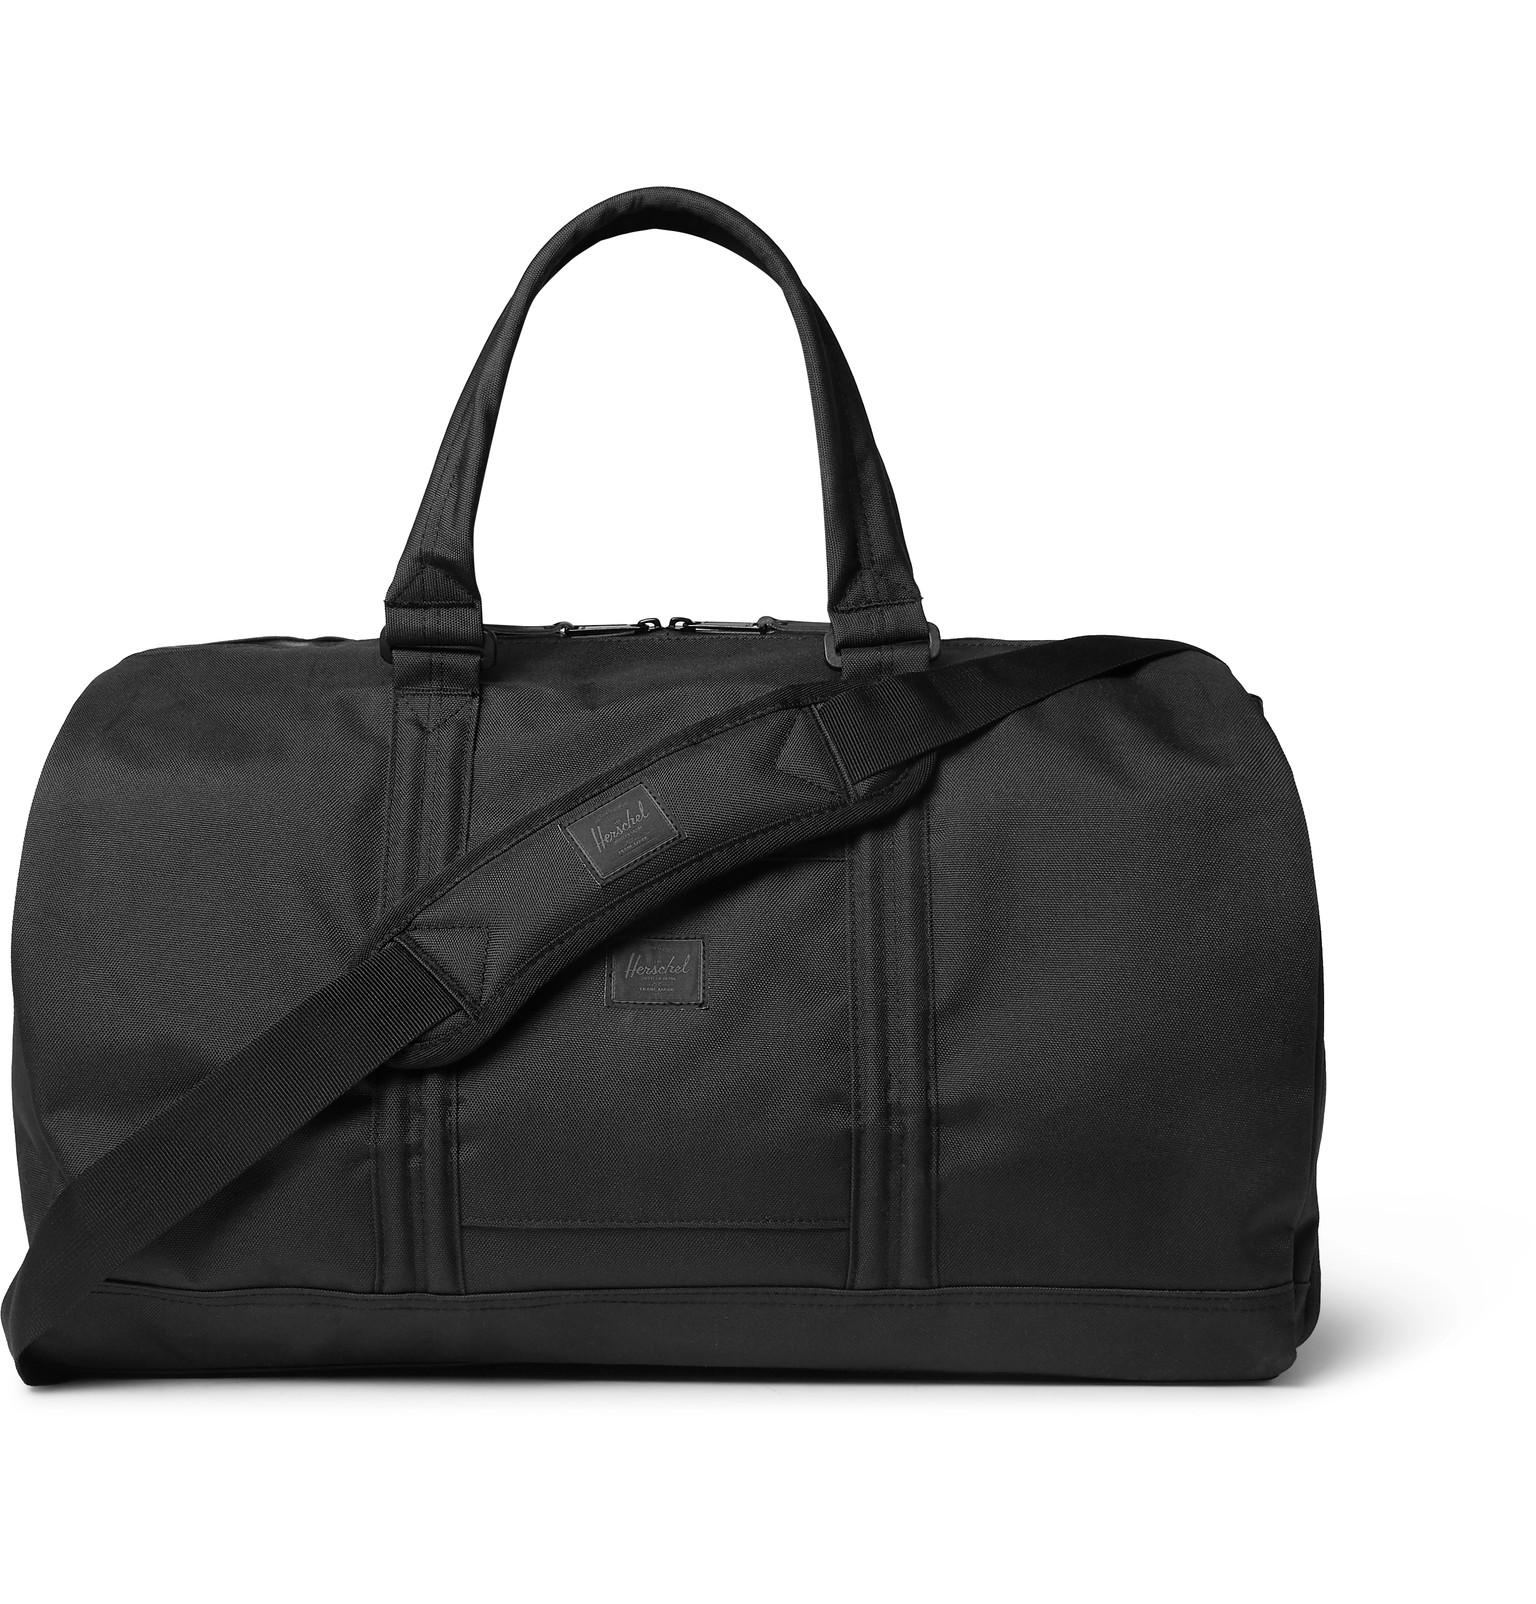 1ae2bce2fd8 Lyst - Herschel Supply Co. Foundation Canvas Duffle Bag in Black for Men